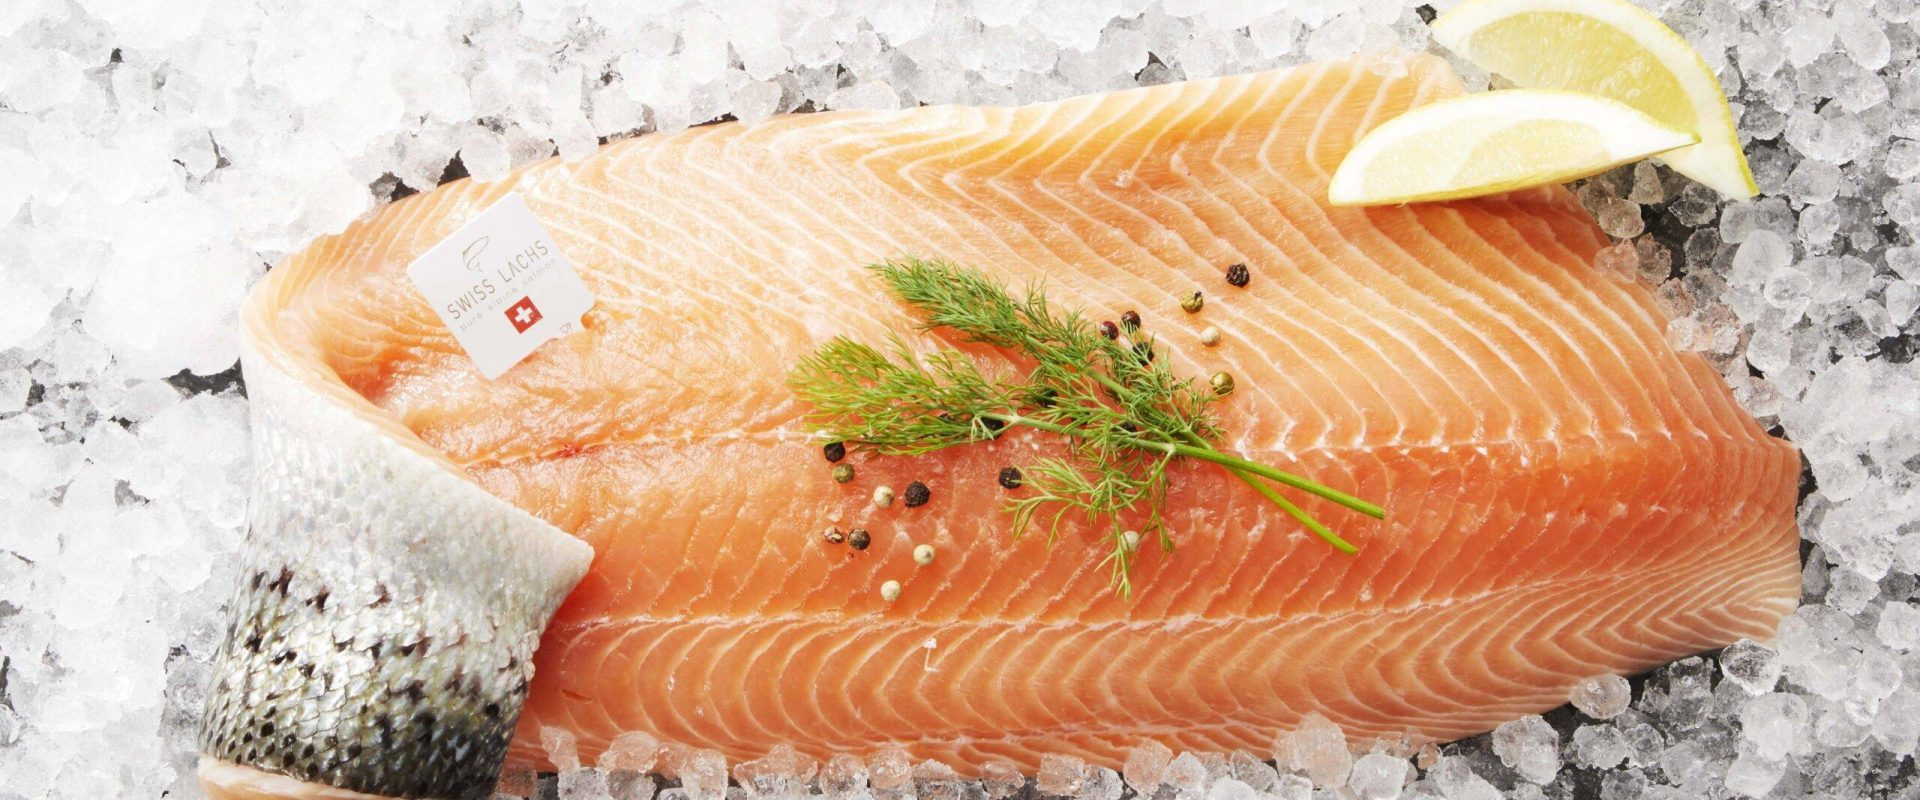 14 11 18 38 scaled 2 - SWISS LACHS Alpiner Lachs